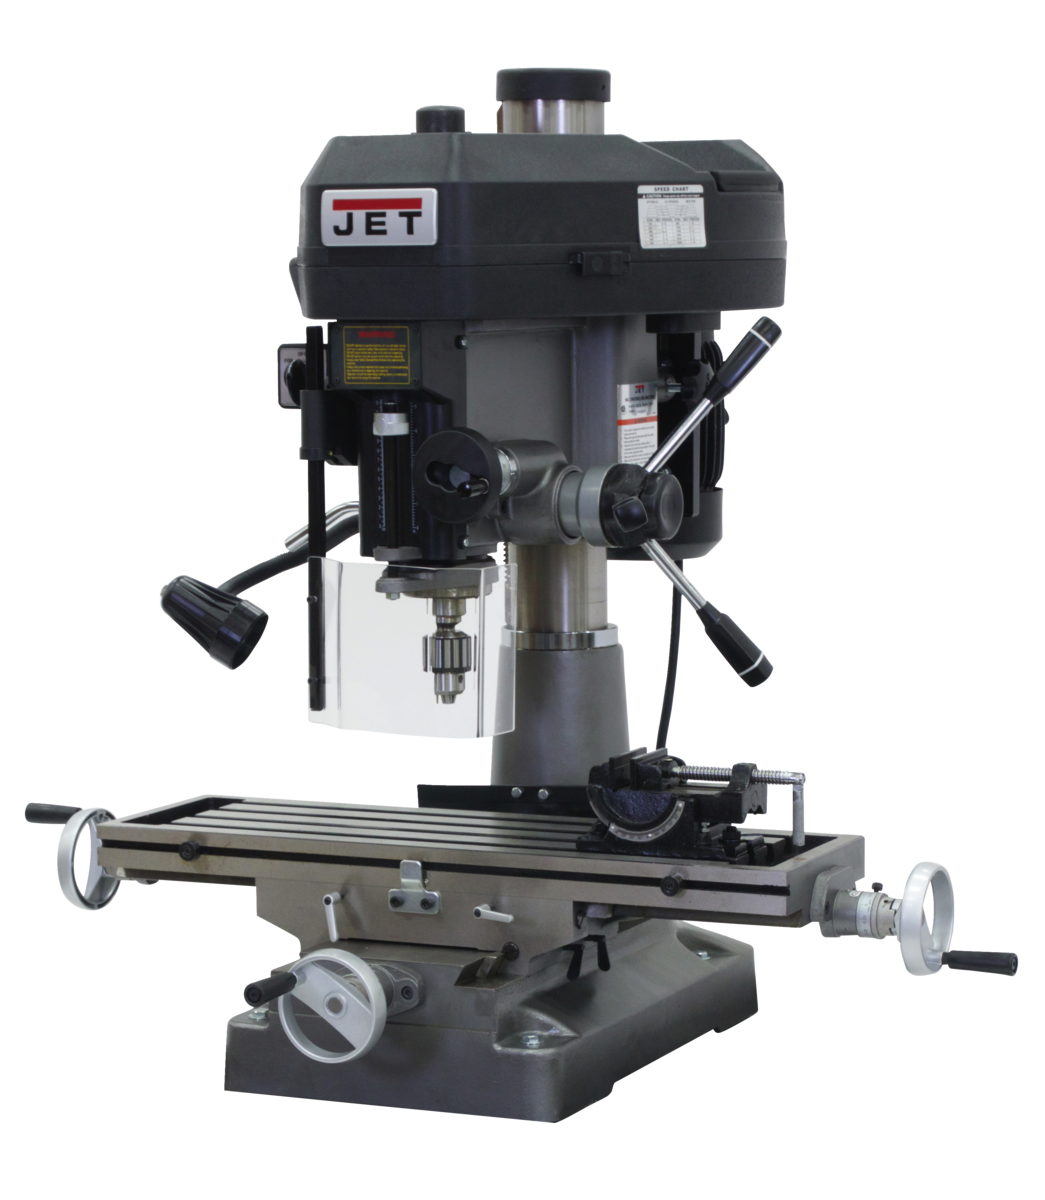 JMD-18 Mill/Drill With X-Axis Table Powerfeed